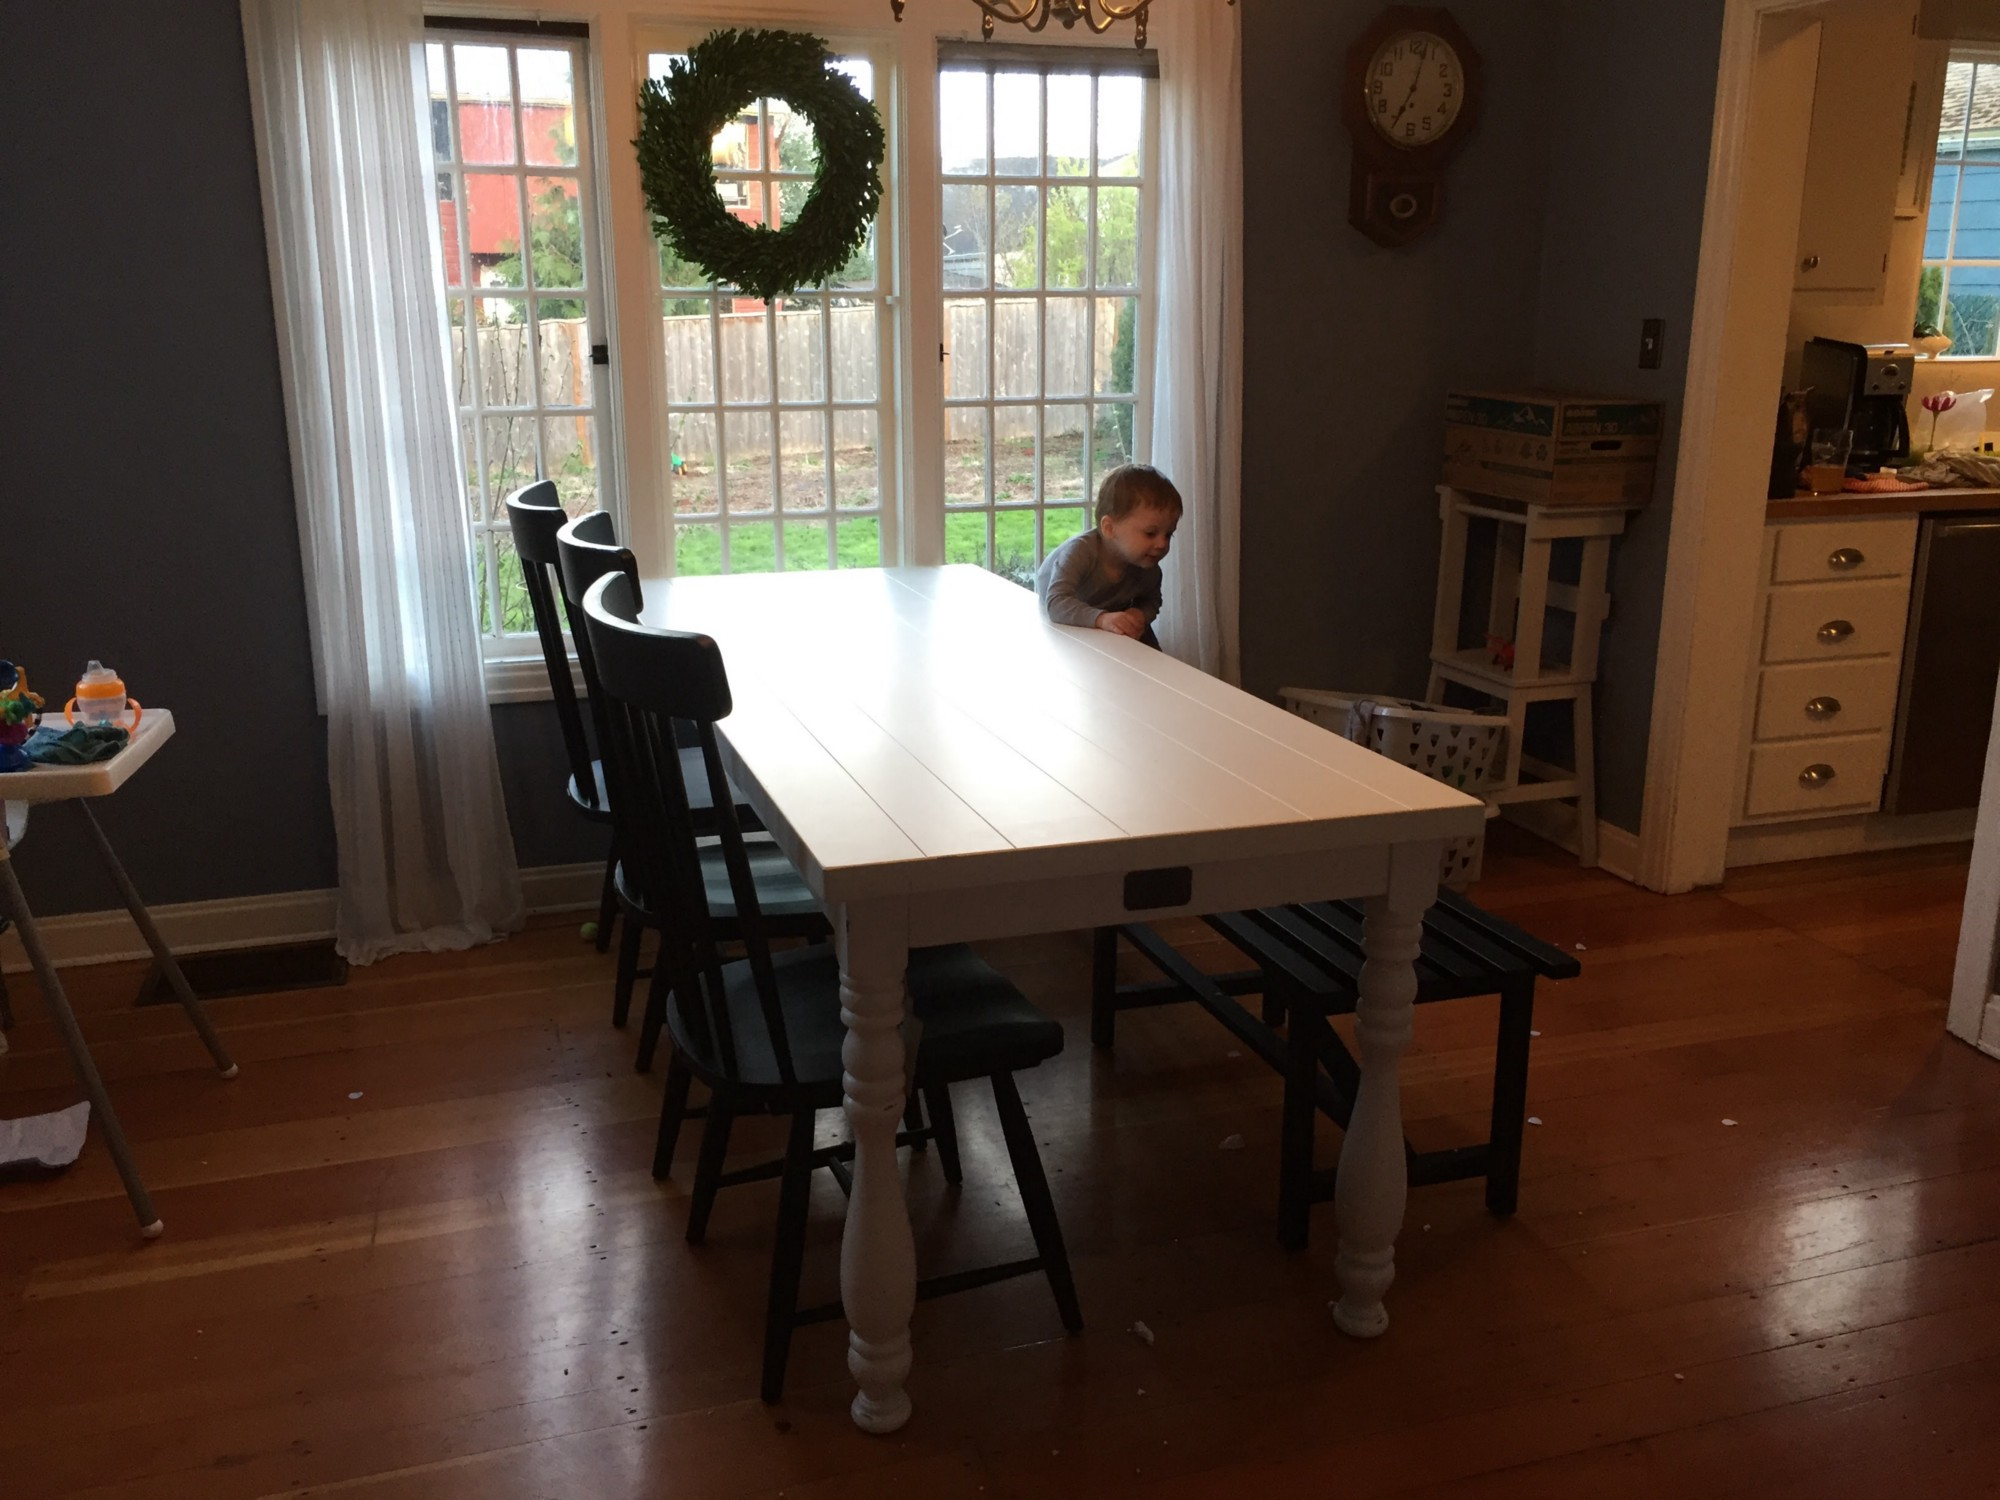 Joanna Gaines Magnolia Home Furniture Line  A Review